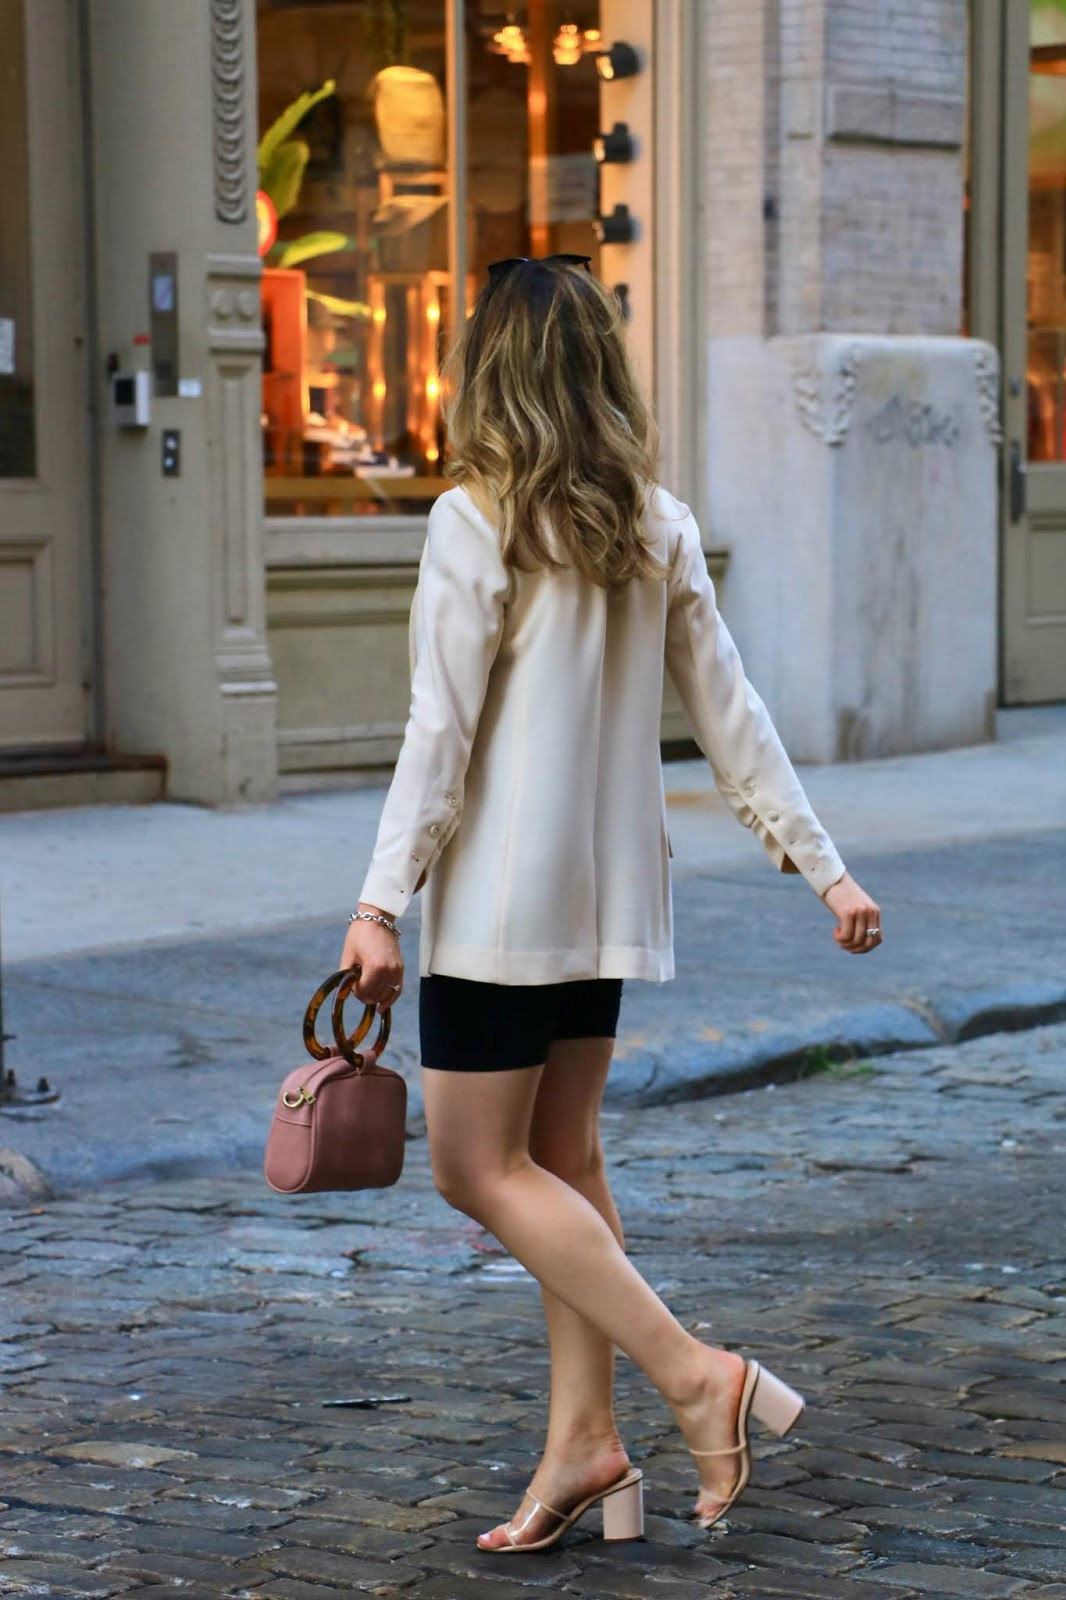 Nyc fashion blogger Kathleen Harper in Soho.